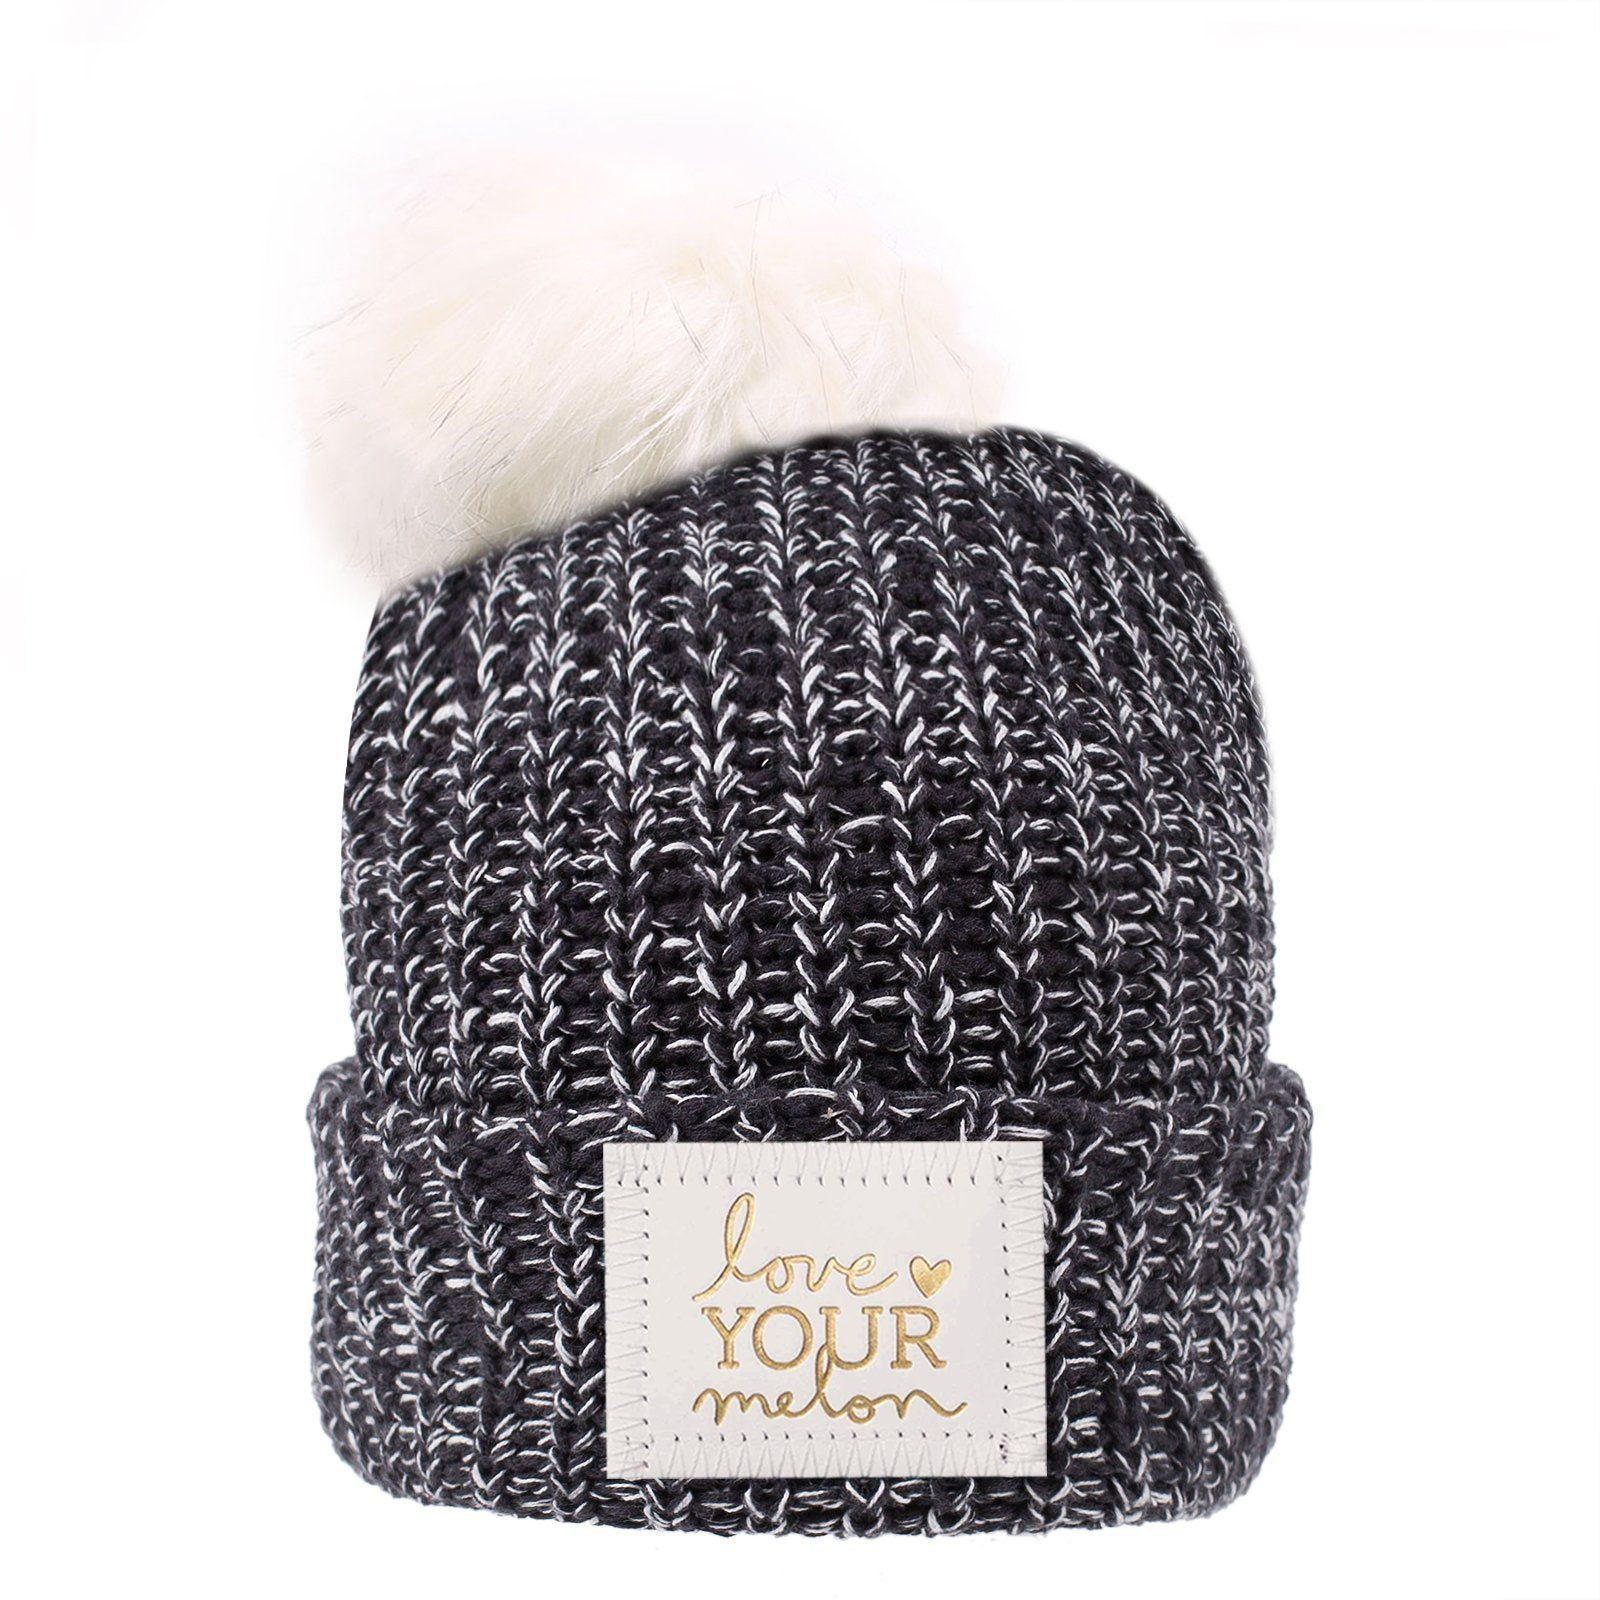 8f9c104d61ef2 Black and White Speckled Pom Beanie (White Gold Foil Patch). Find this Pin  and more on Love your melon ...